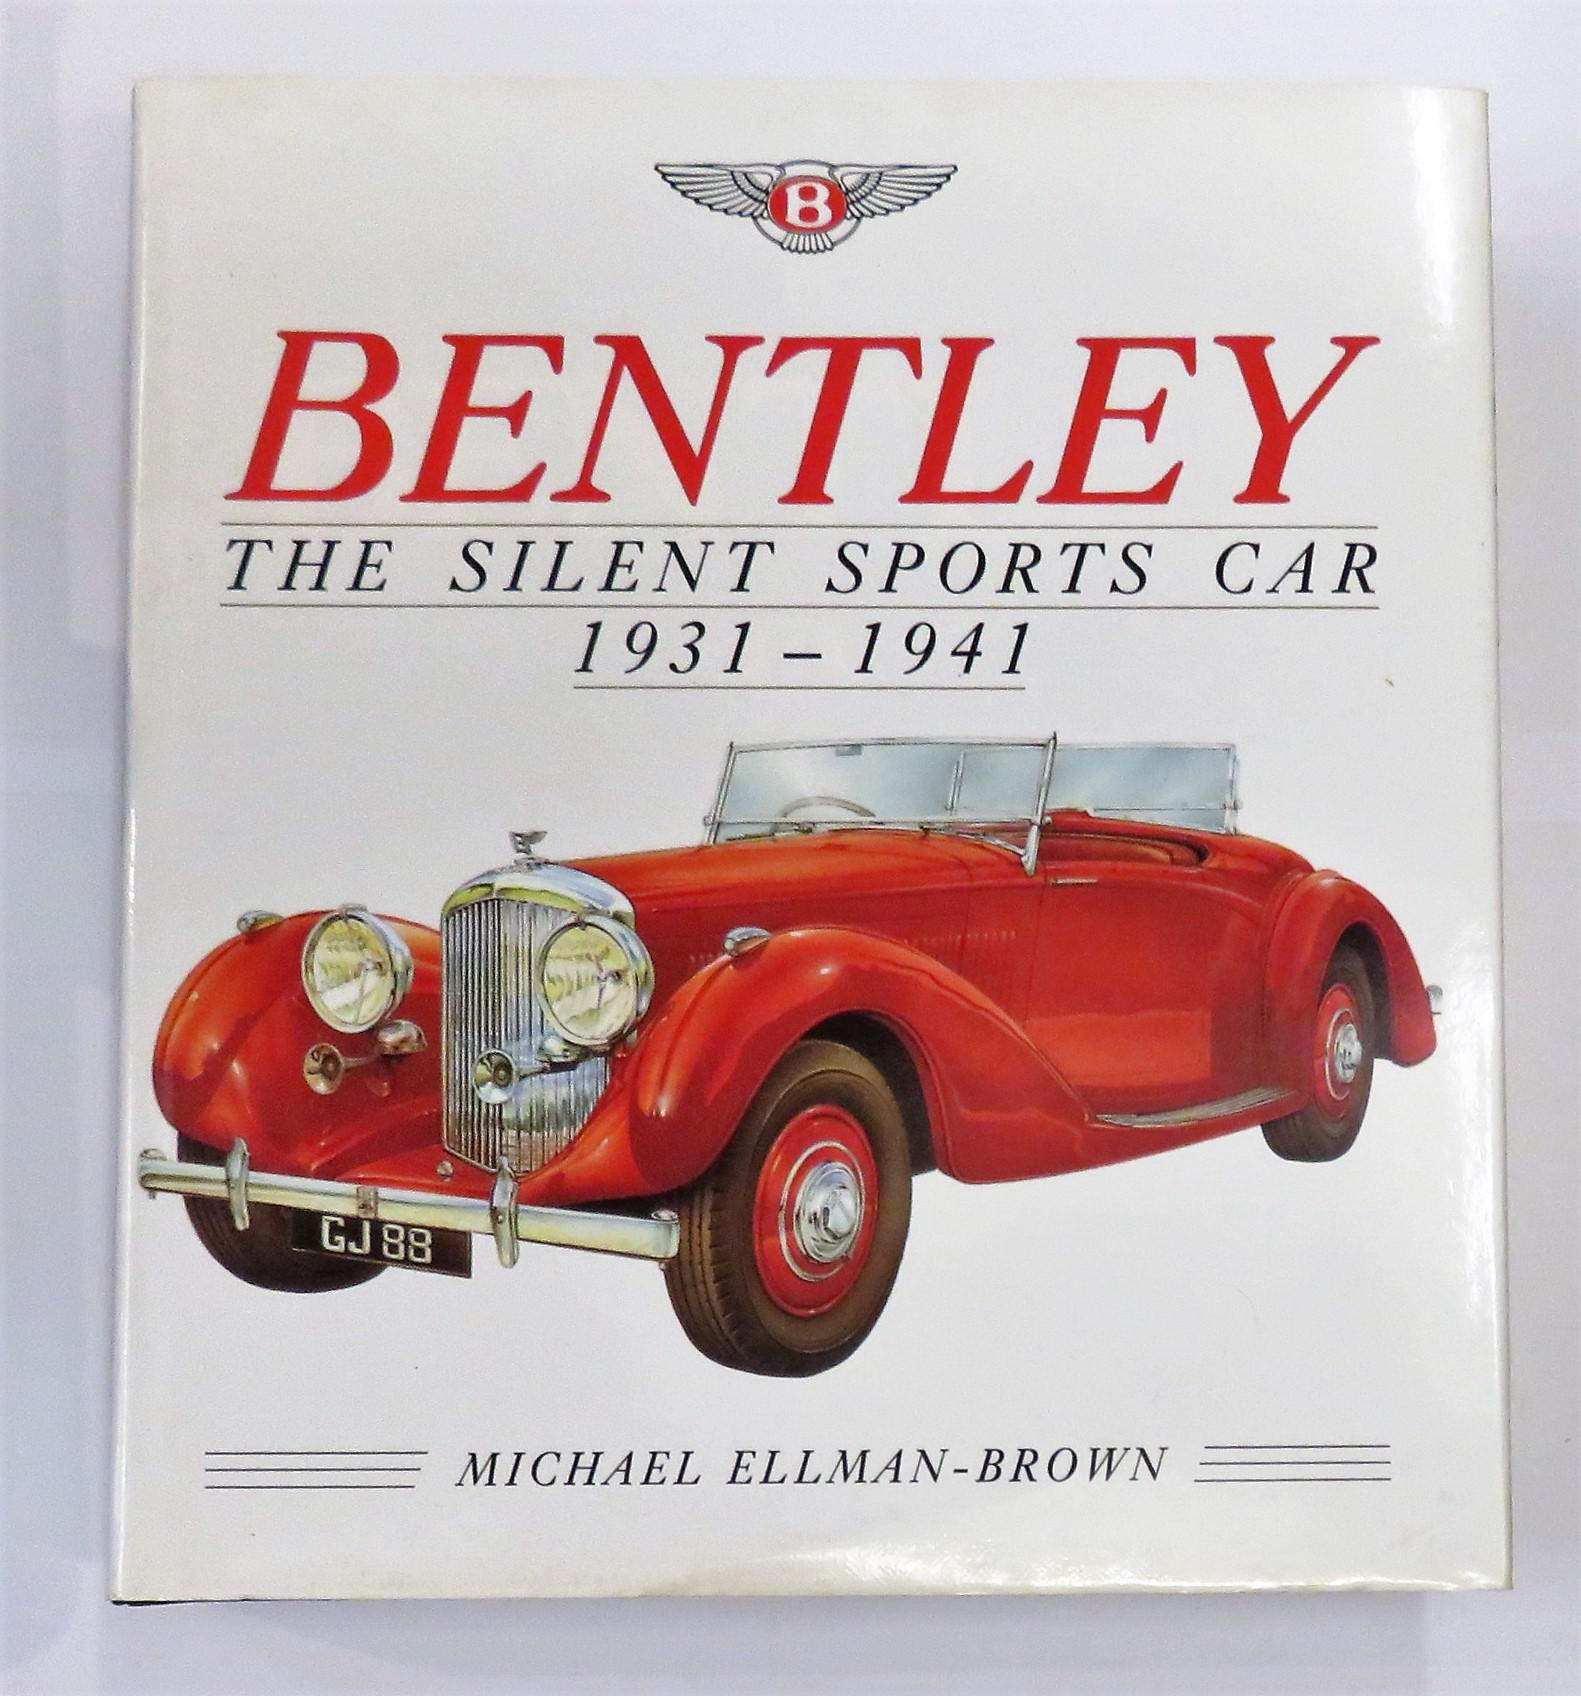 Bentley The Silent Sports Car 1931-1941